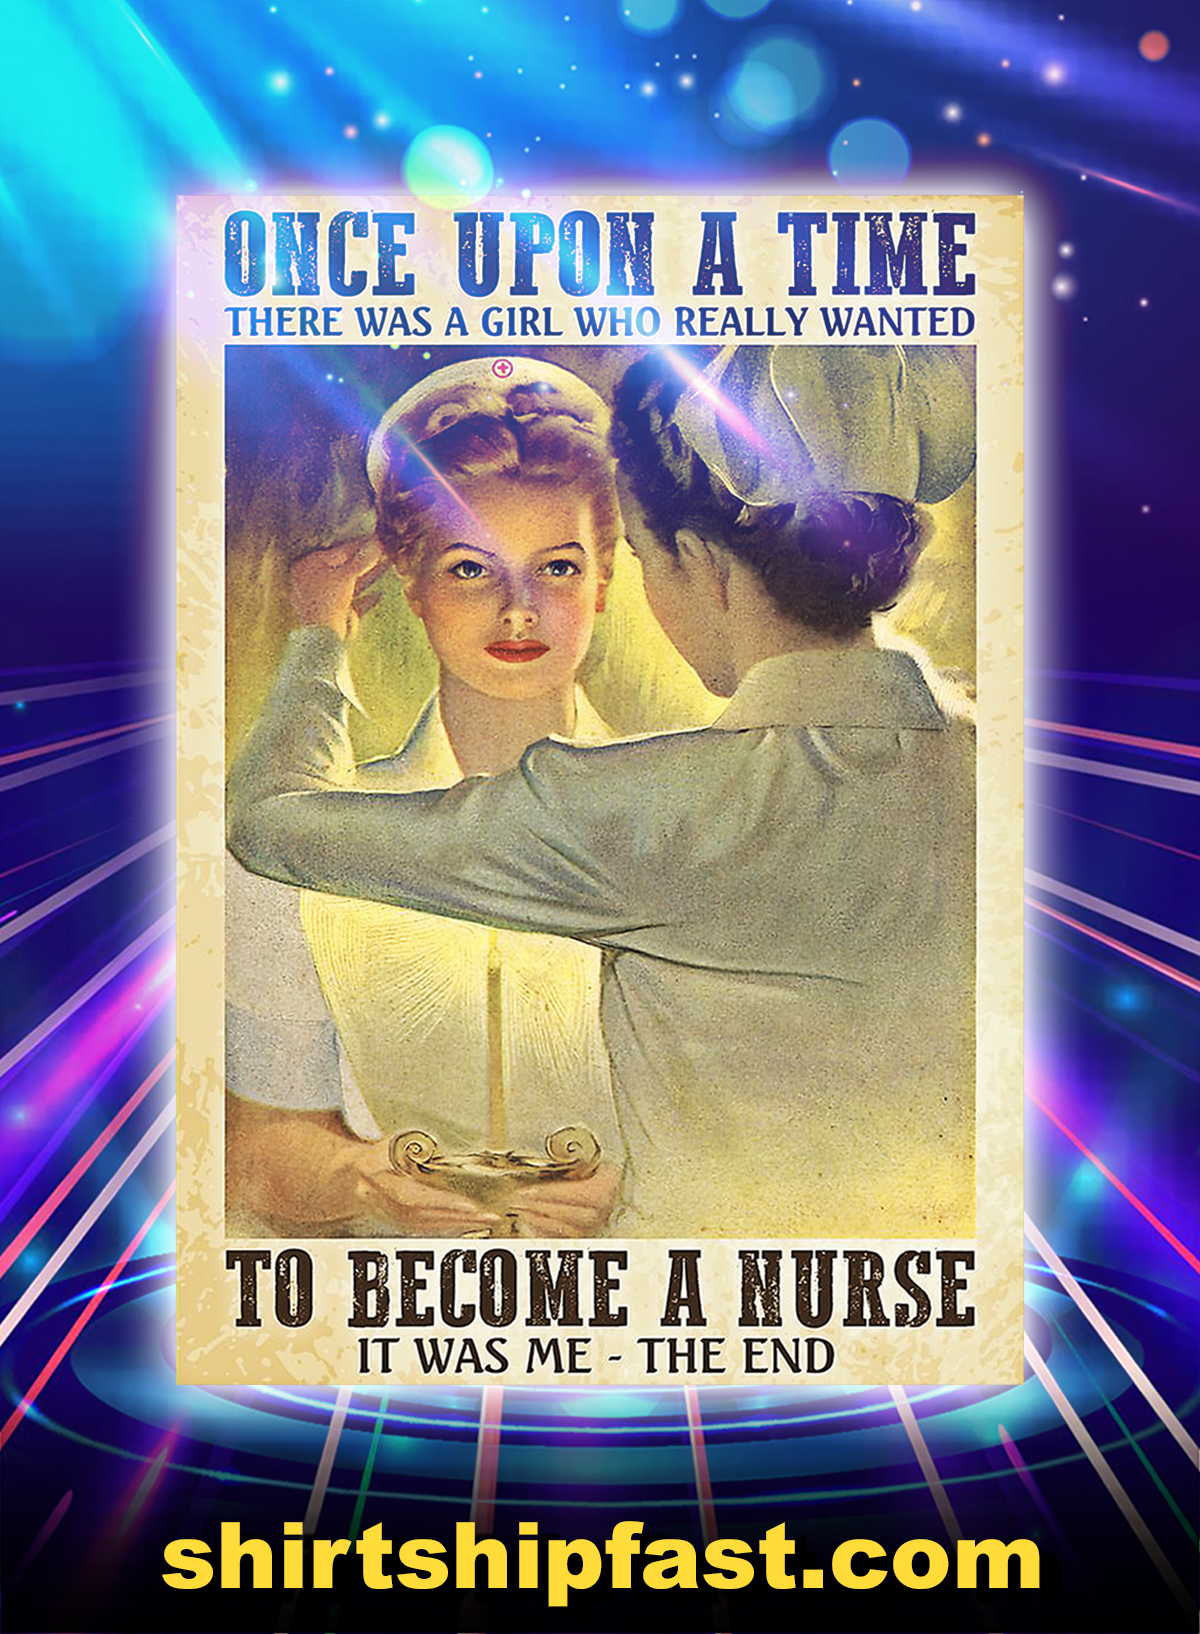 Once upon a time there was a girl who really wanted to become a nurse poster - A1